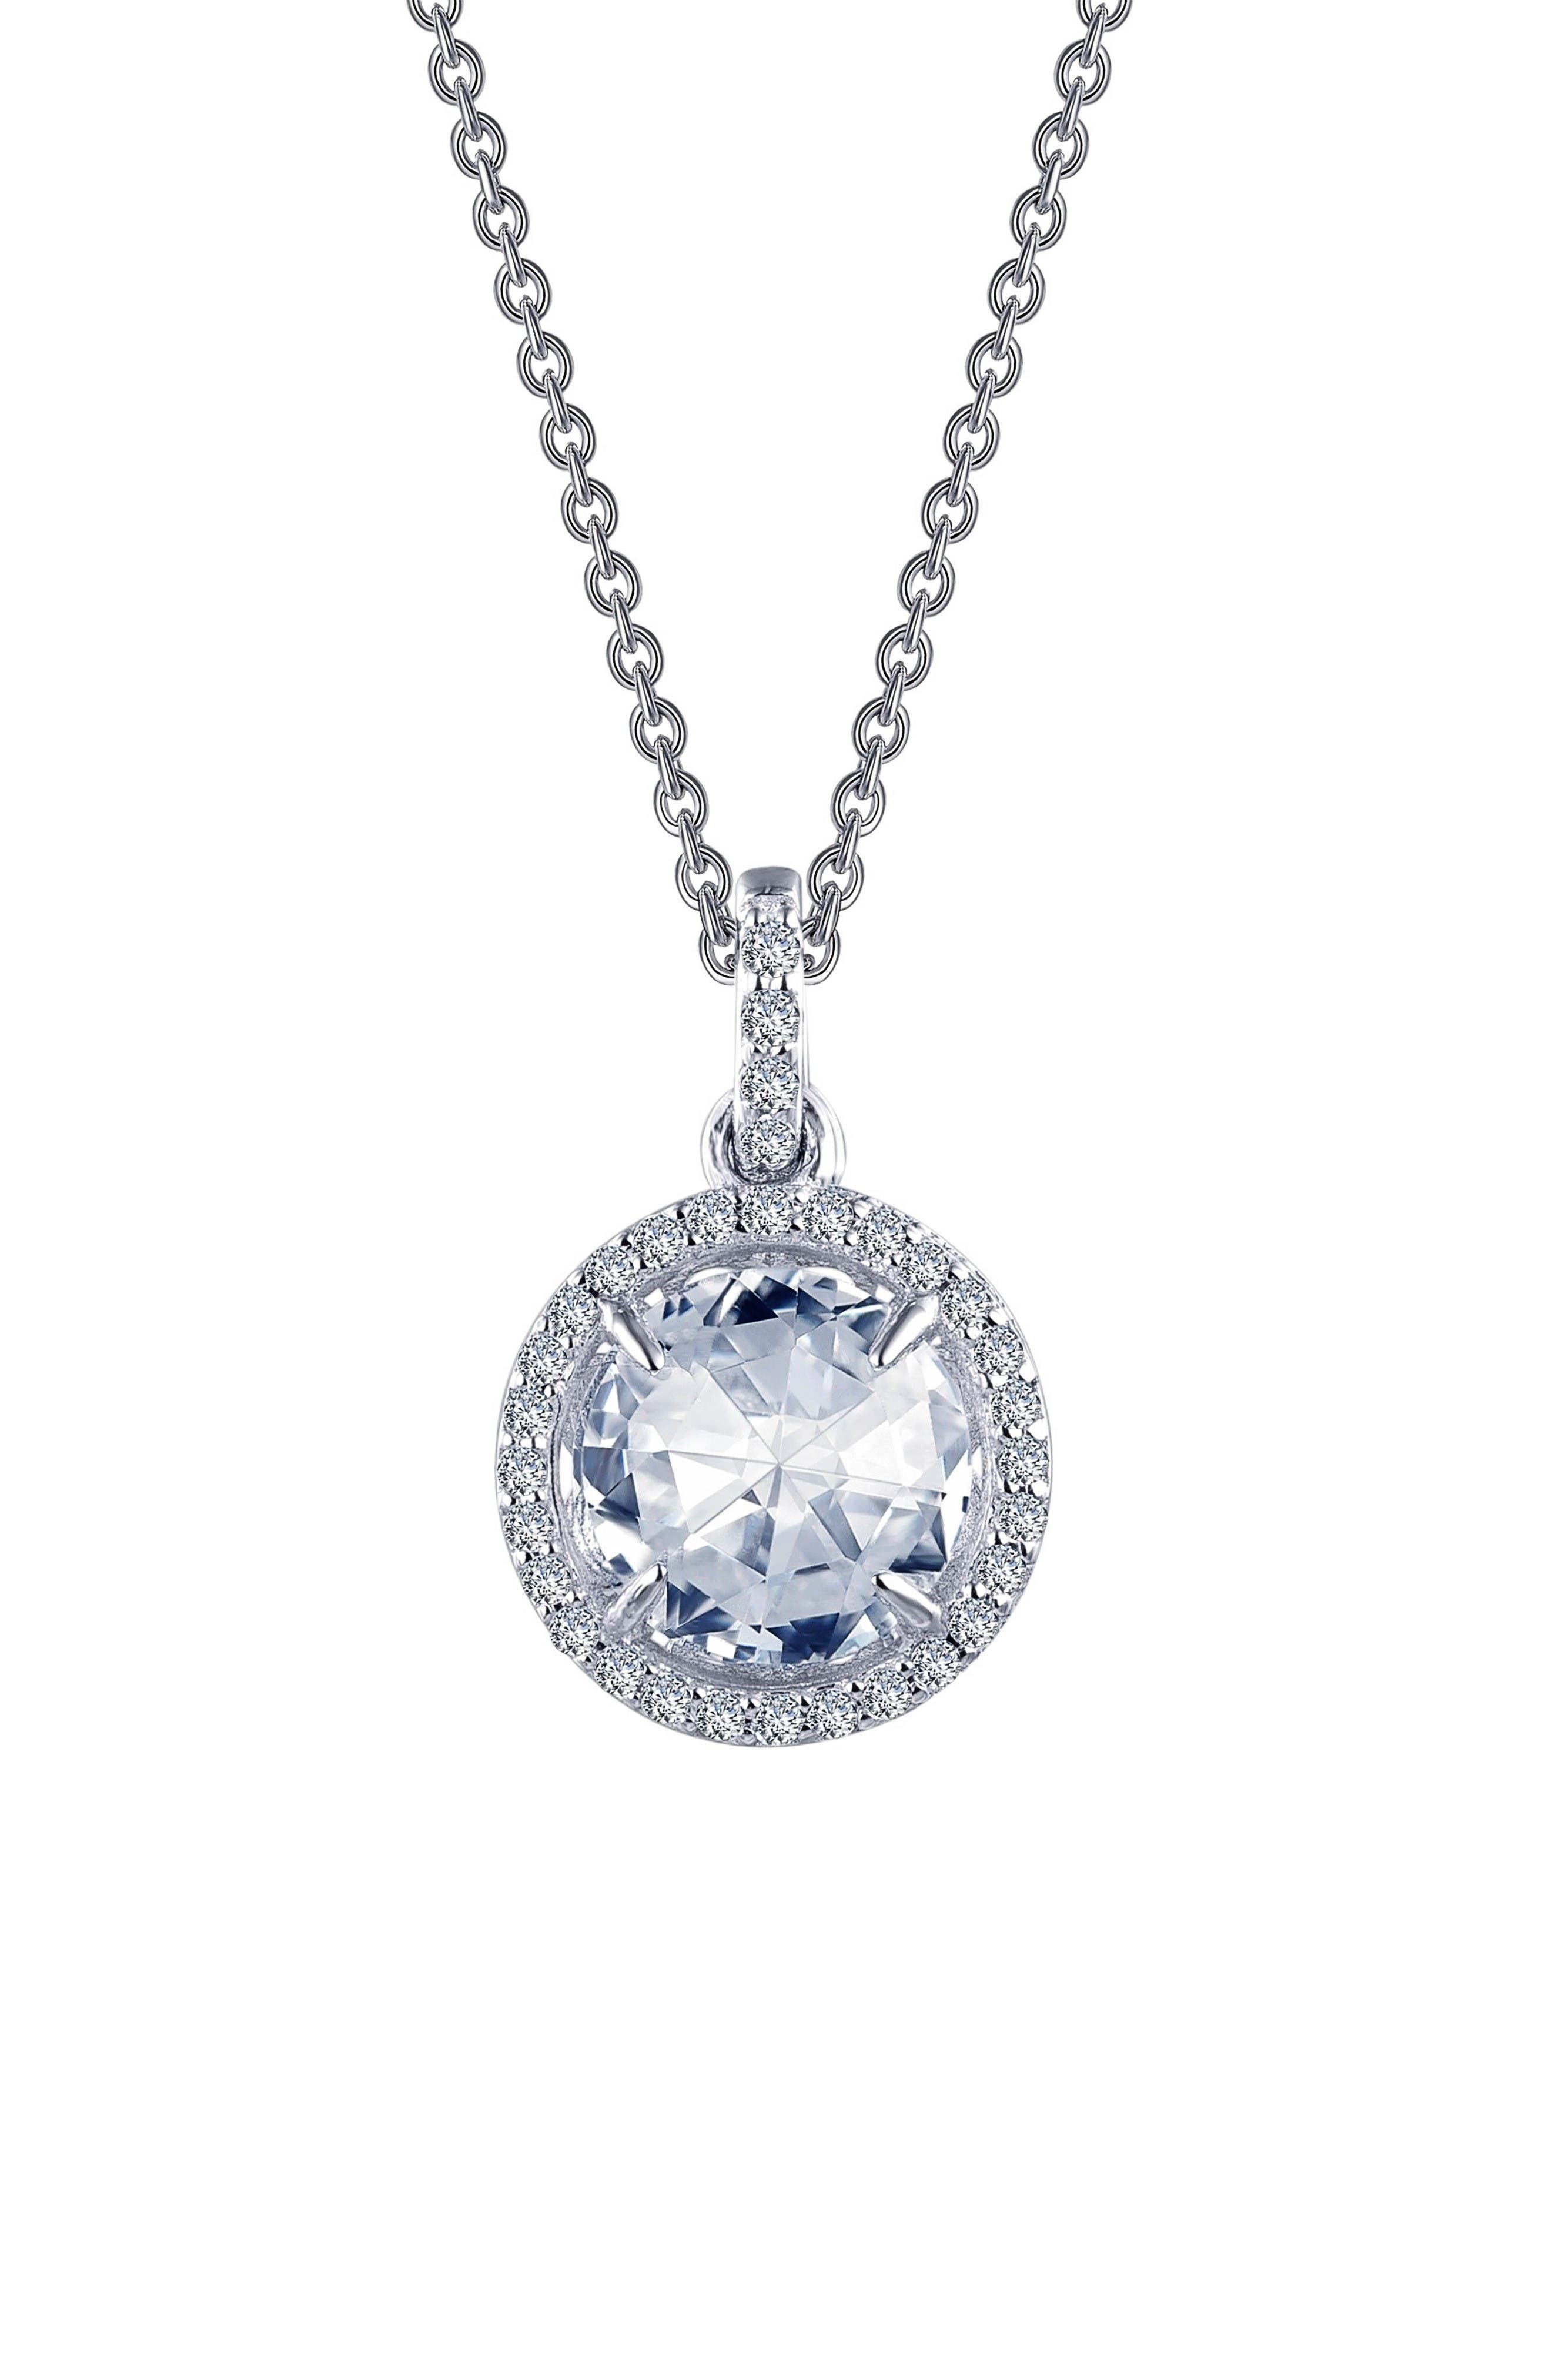 Main Image - Lafonn Rose Cut Simulated Diamond Pendant Necklace